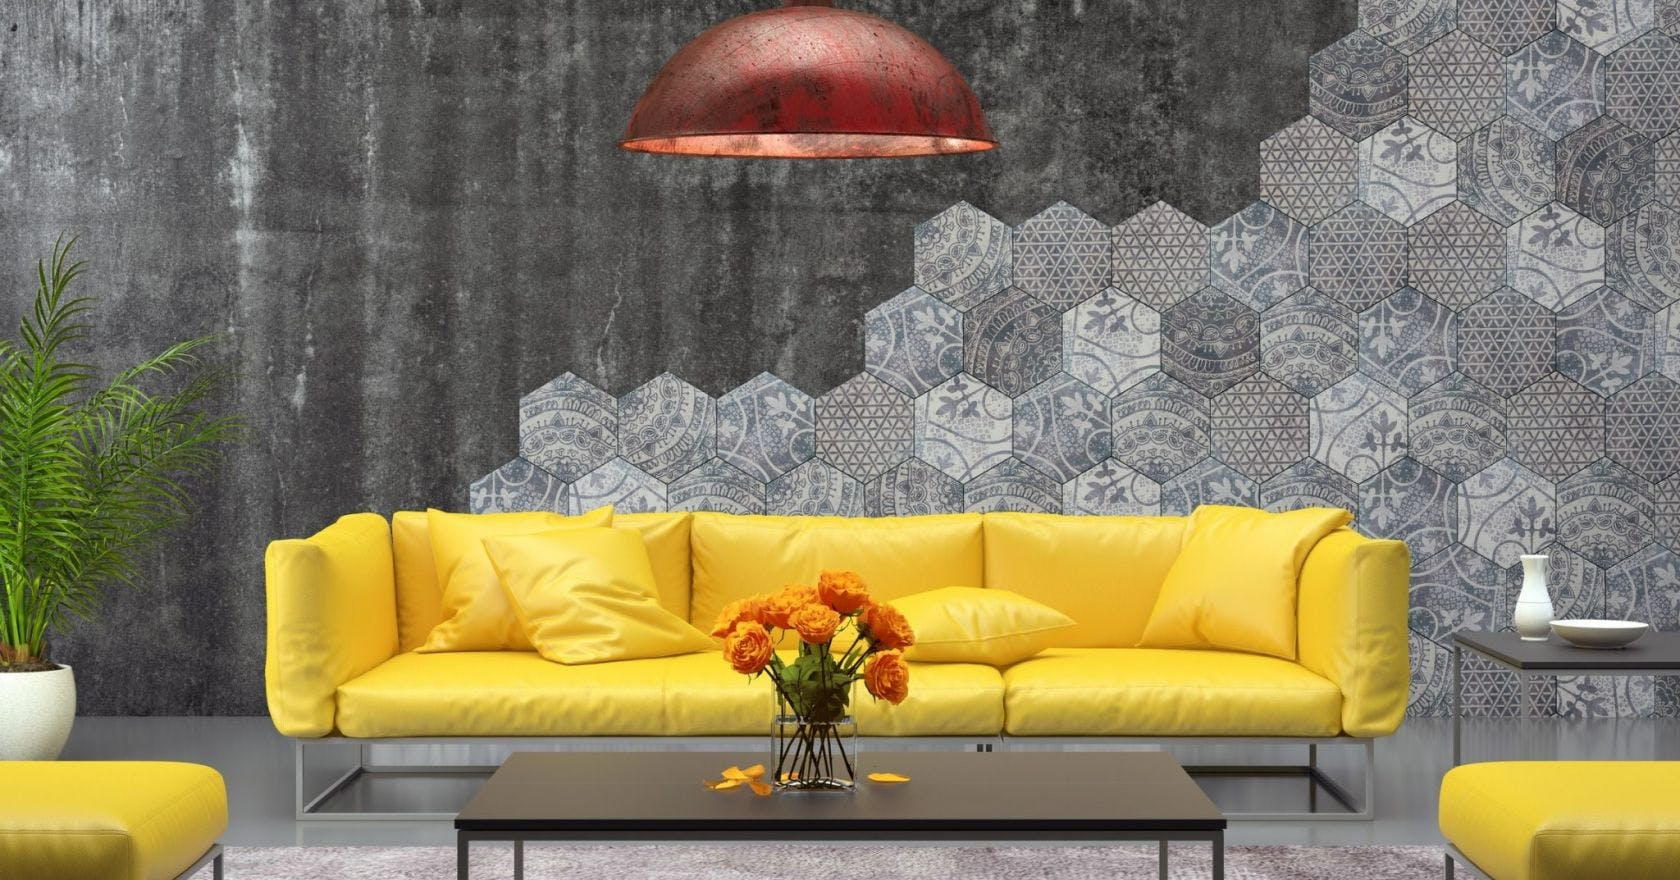 6 ways to embrace the maximalist interiors trend